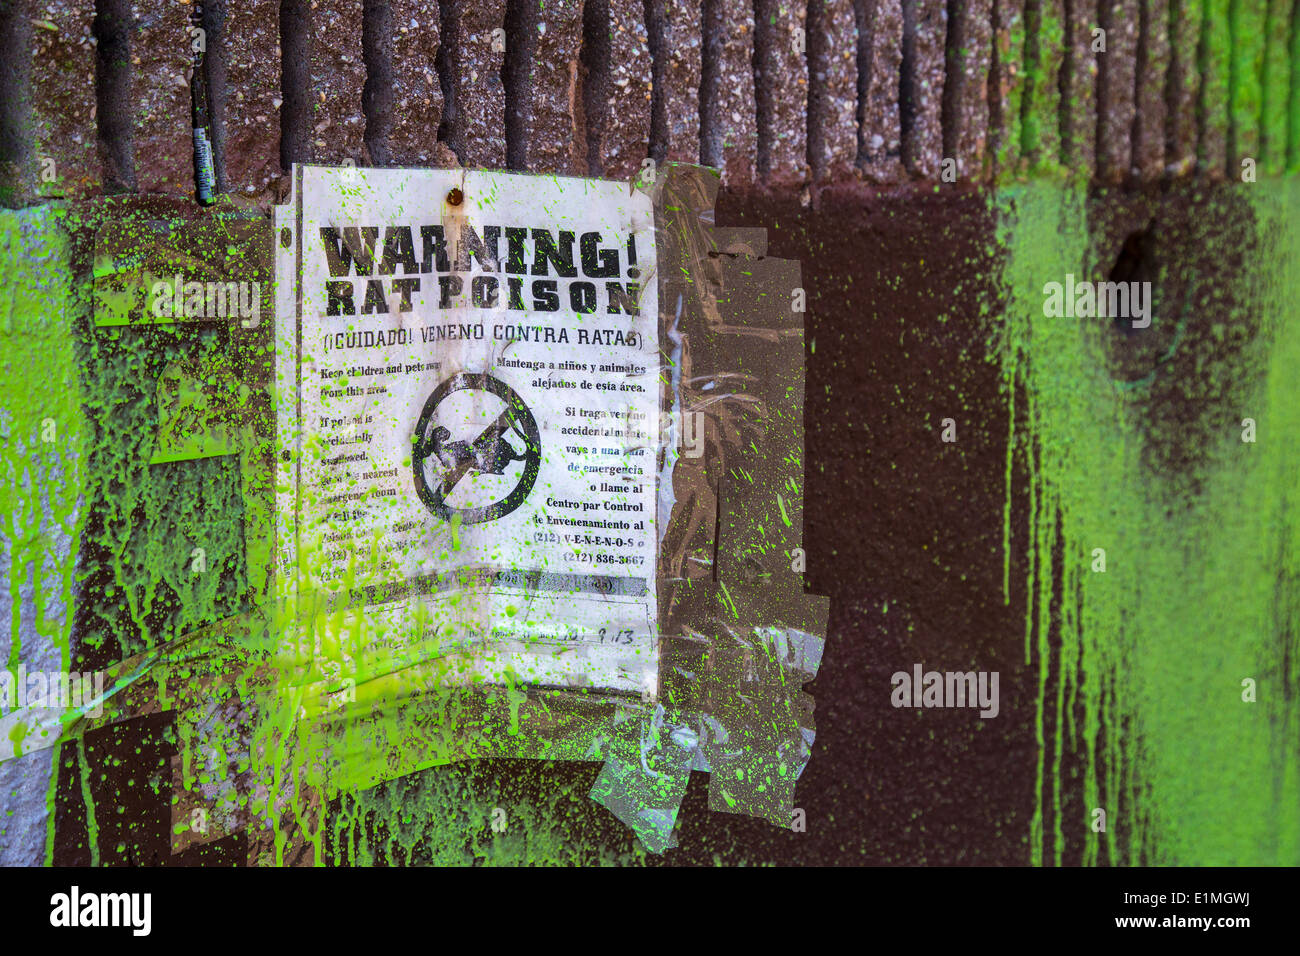 Rat Poison Warning Sign - Stock Image